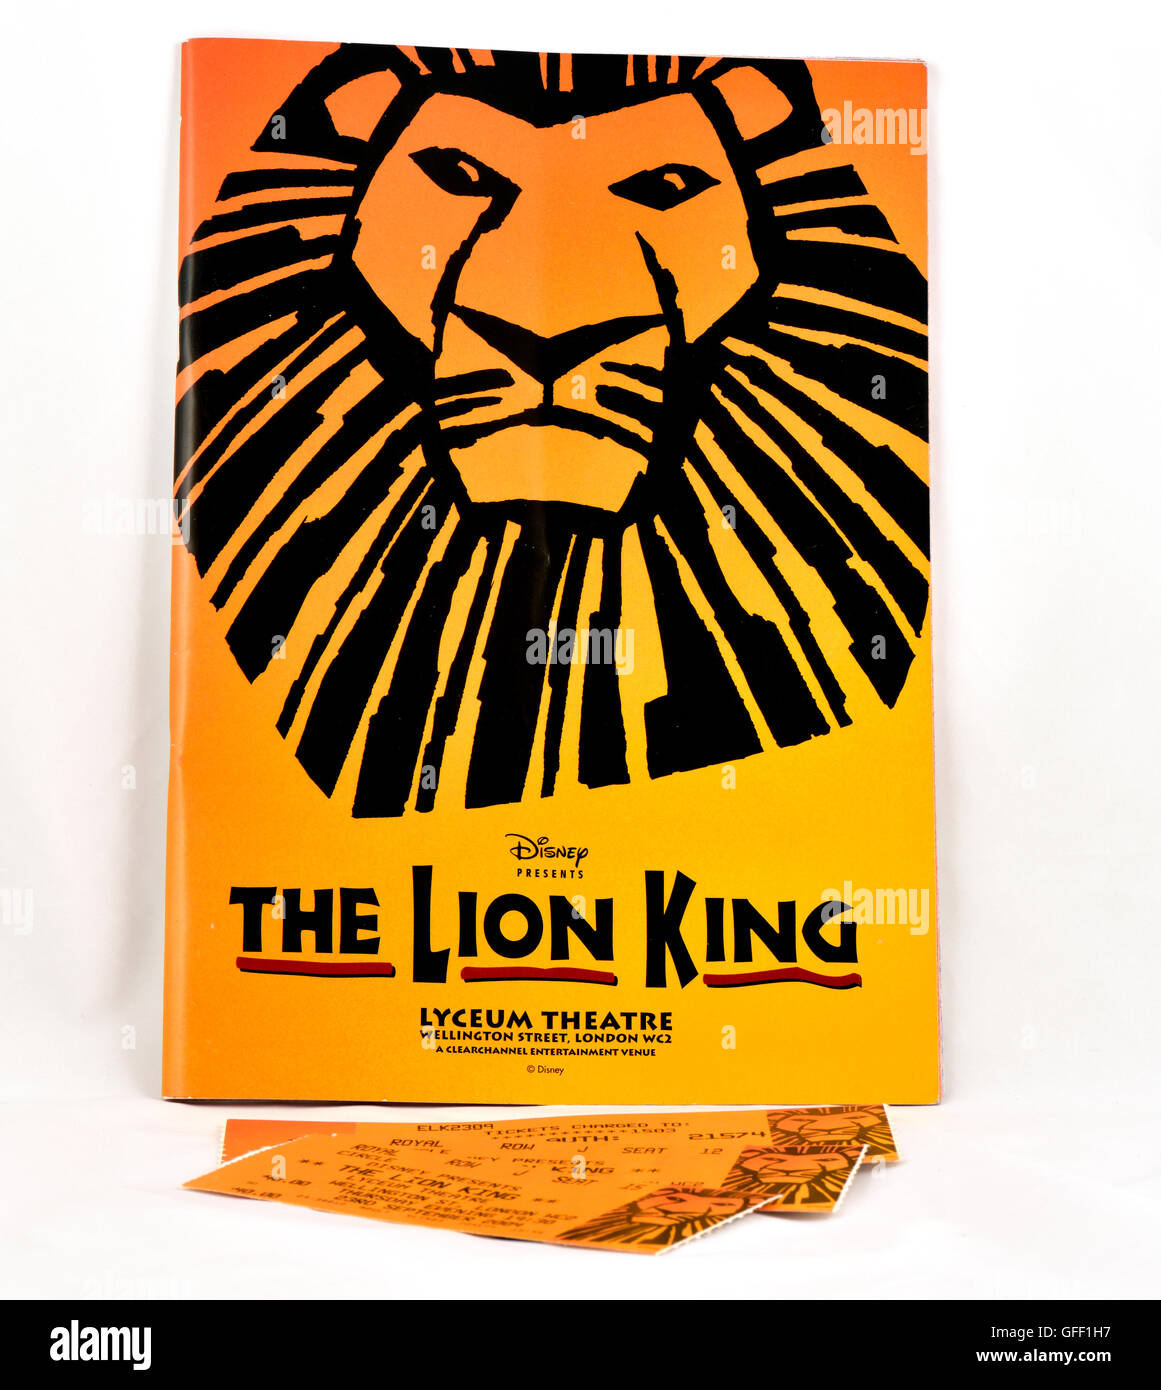 Programme for the Lyceum Theatre 'The Lion King' and tickets - Stock Image